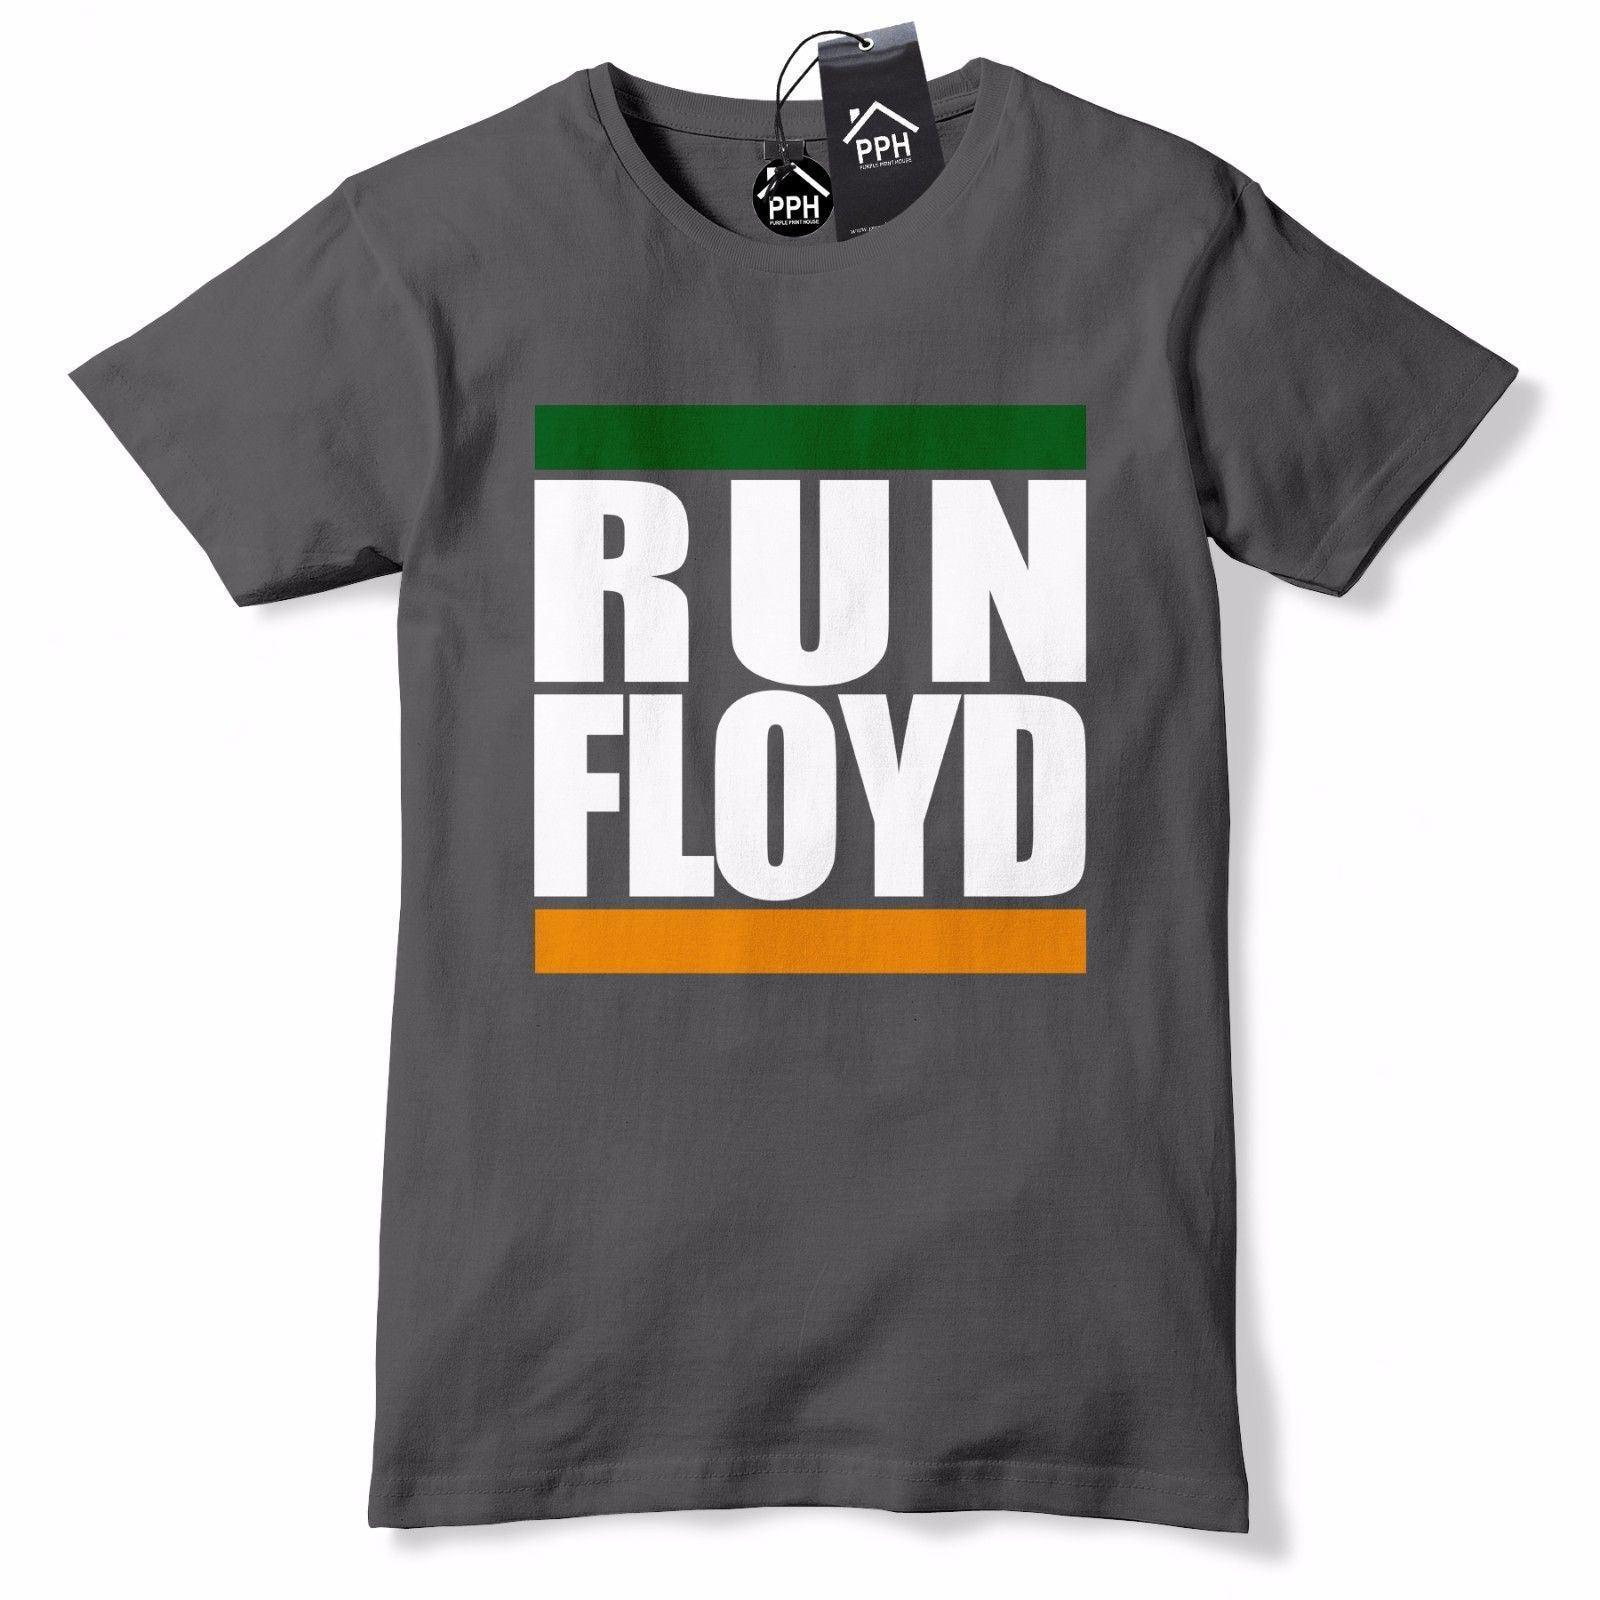 6eb3cd98 Funny Run Floyd Conor McGregor T Shirt Boxing UFC MMA Vegas Fight Tee Top  664 O-neck Fashion Printed Round Neck man's